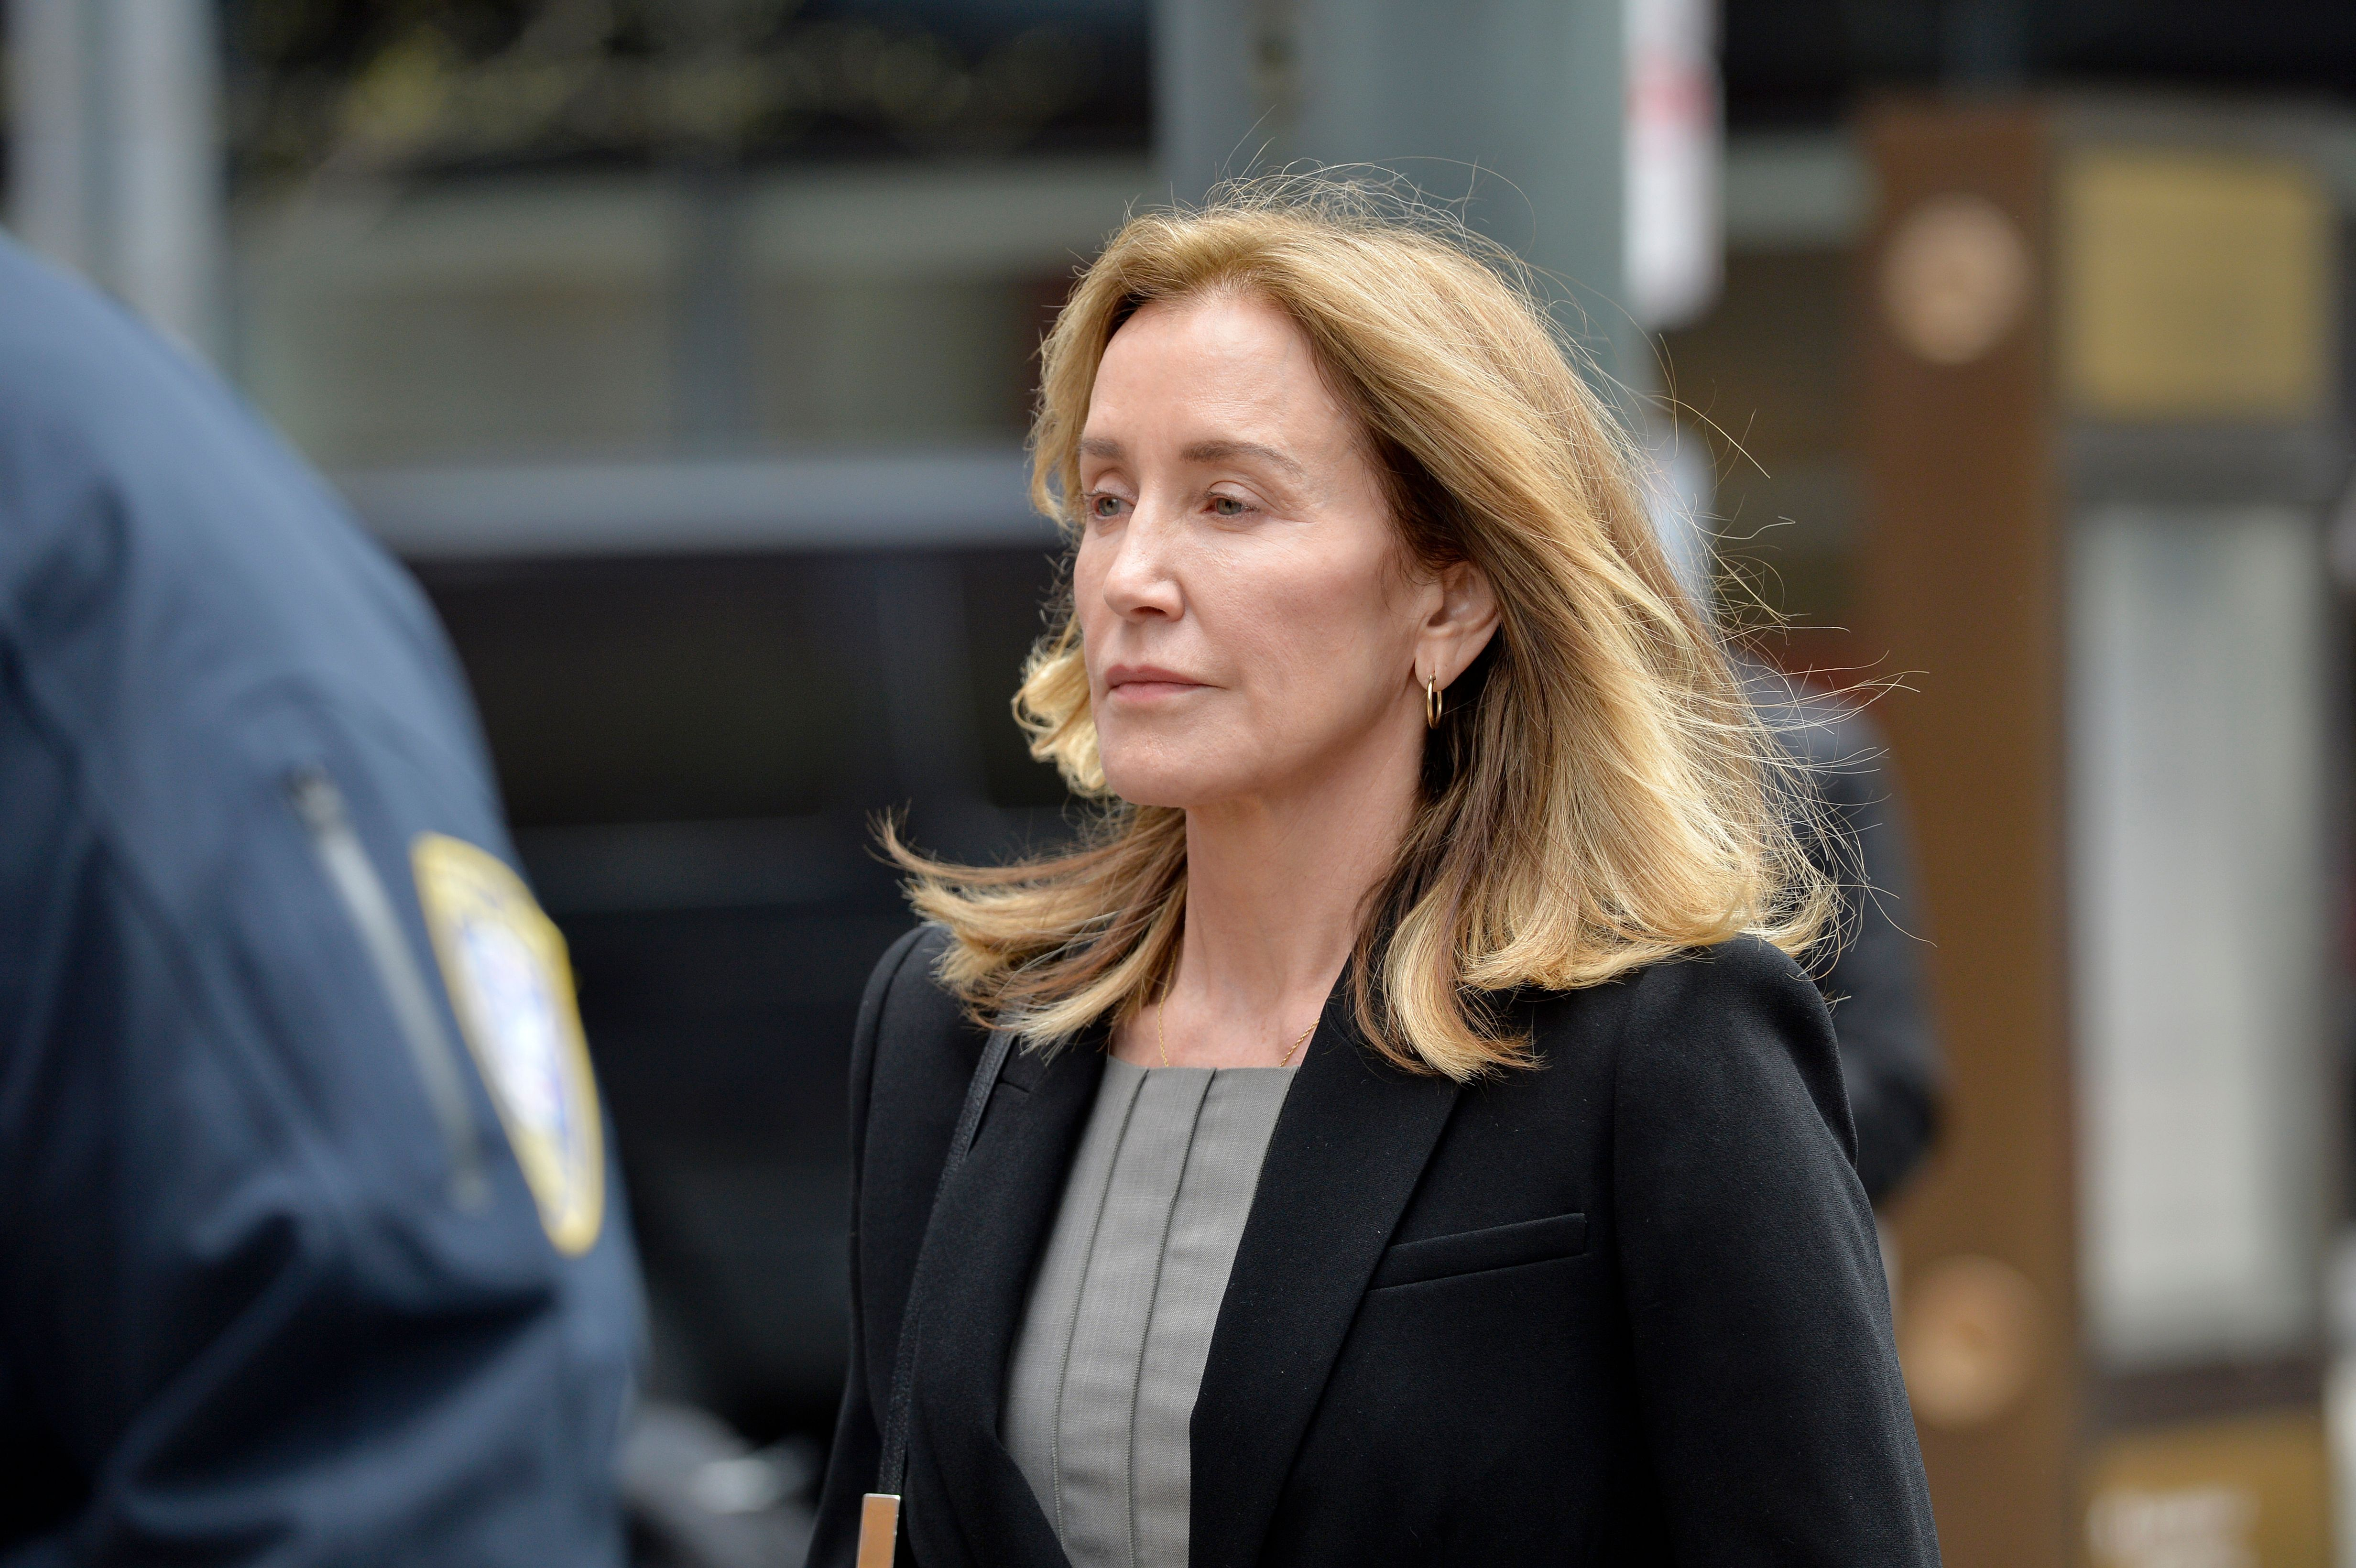 How Felicity Huffman and William H. Macy Became Involved the College Admissions Scandal